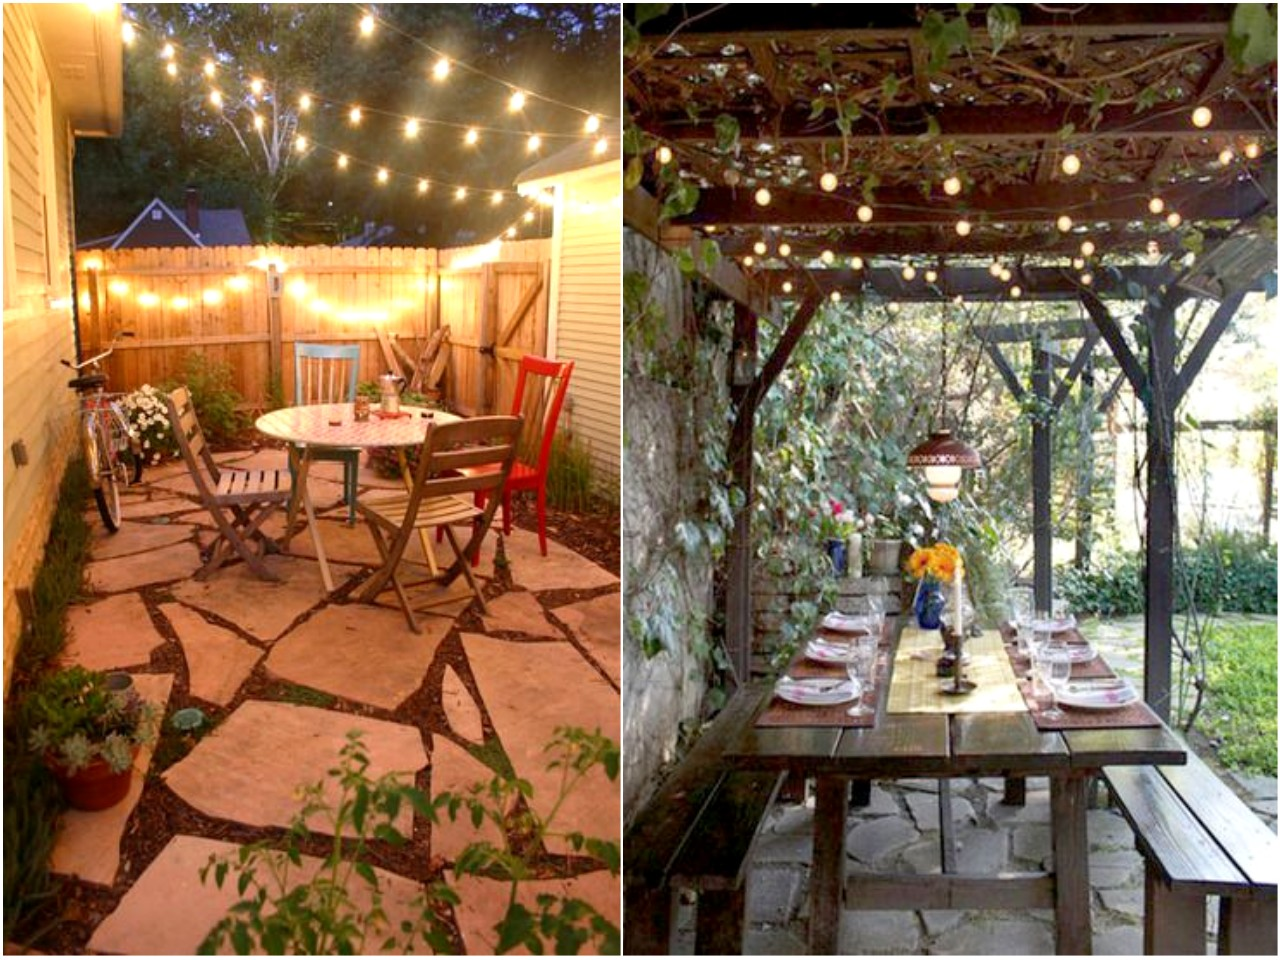 30 ideas para descubrir la decoraci n con luces de colores - Luces patio exterior ...